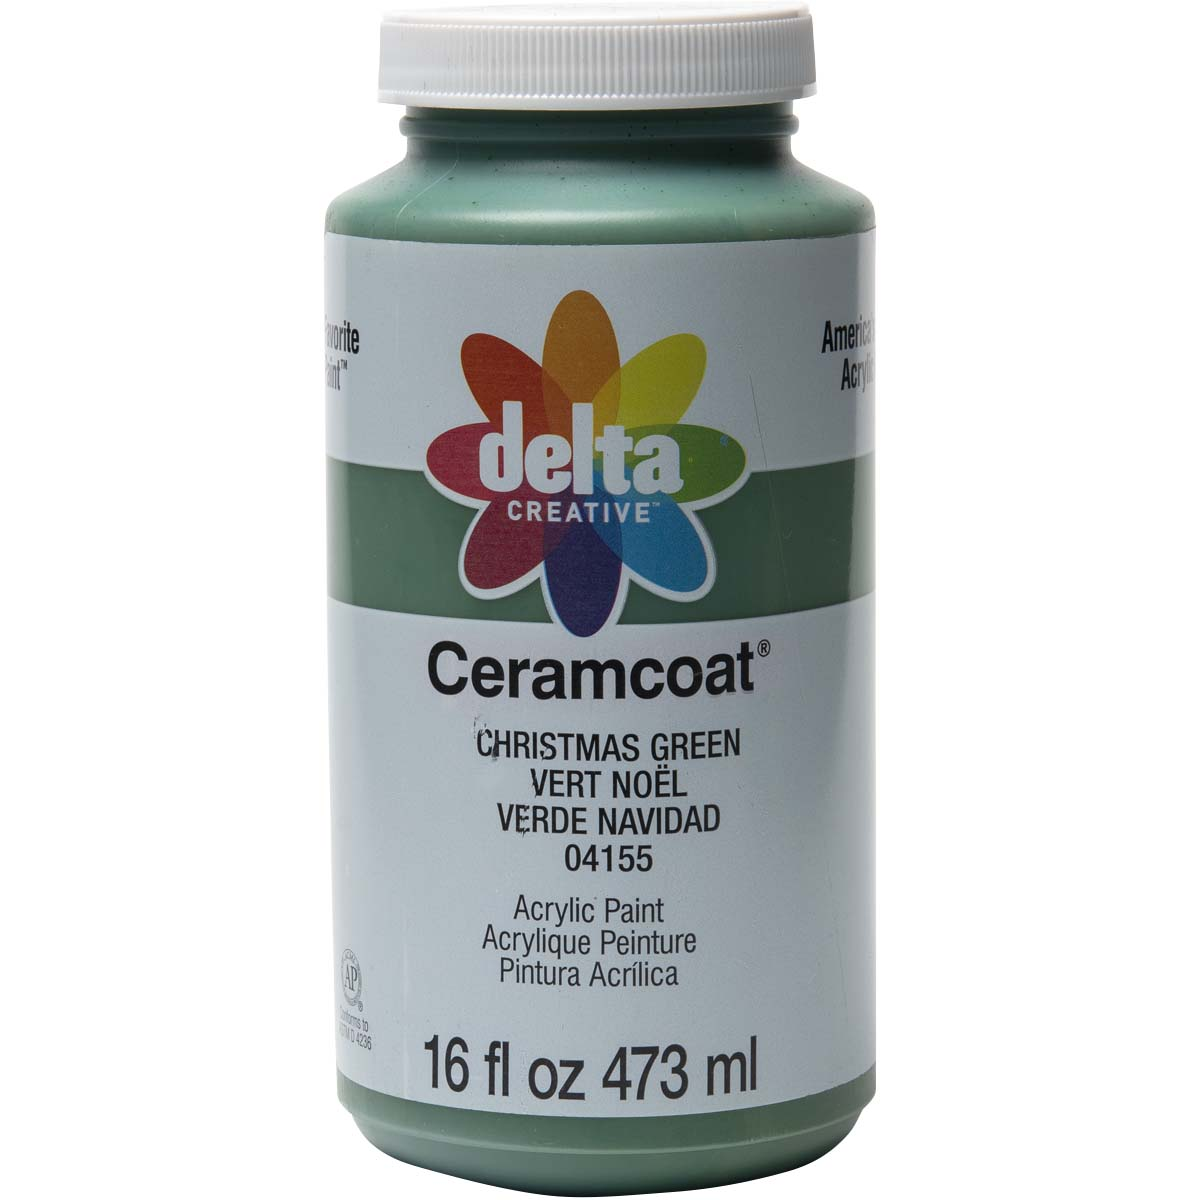 Delta Ceramcoat ® Acrylic Paint - Christmas Green, 16 oz. - 04155